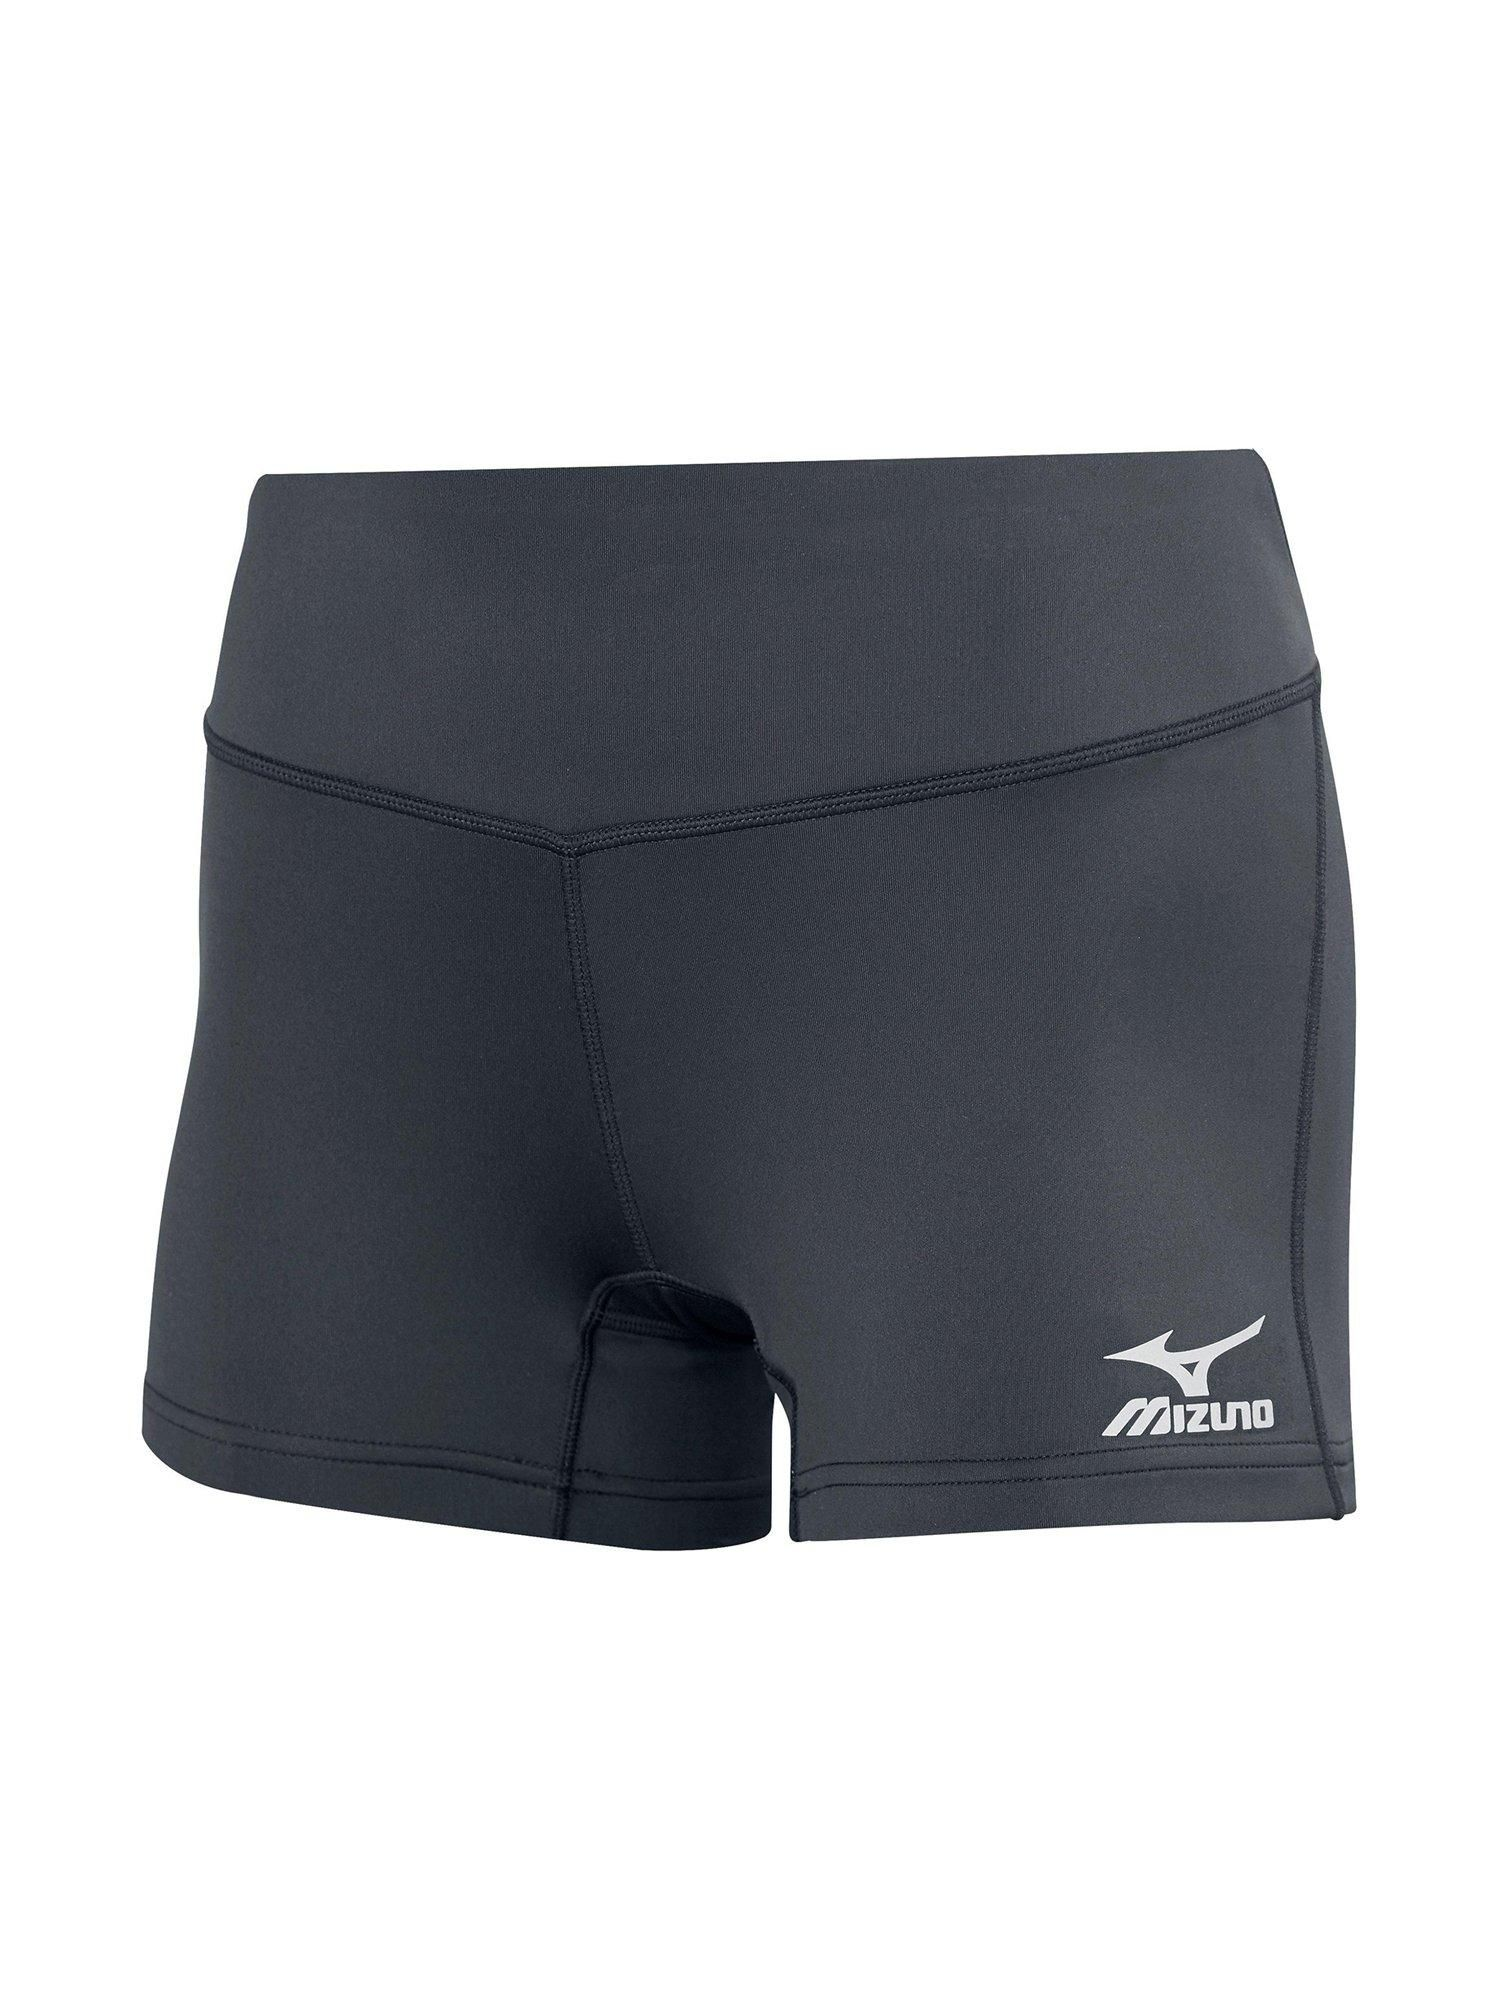 Mizuno Womens Volleyball Apparel Victory 3 5 Inseam Volleyball Shorts 440656 Volleyball Apparel Mizuno Fashion Tips To Look Skinny In 2019 Fashion